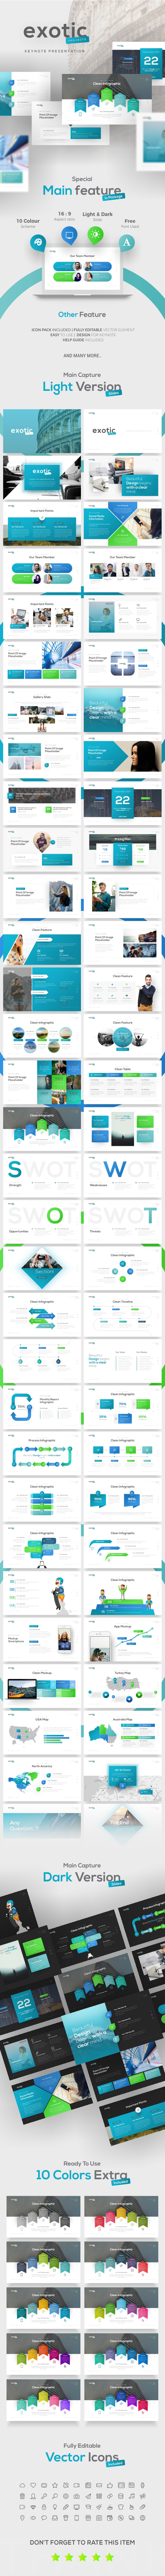 Exotic Project Keynote Presentation Template - Keynote Templates Presentation Templates